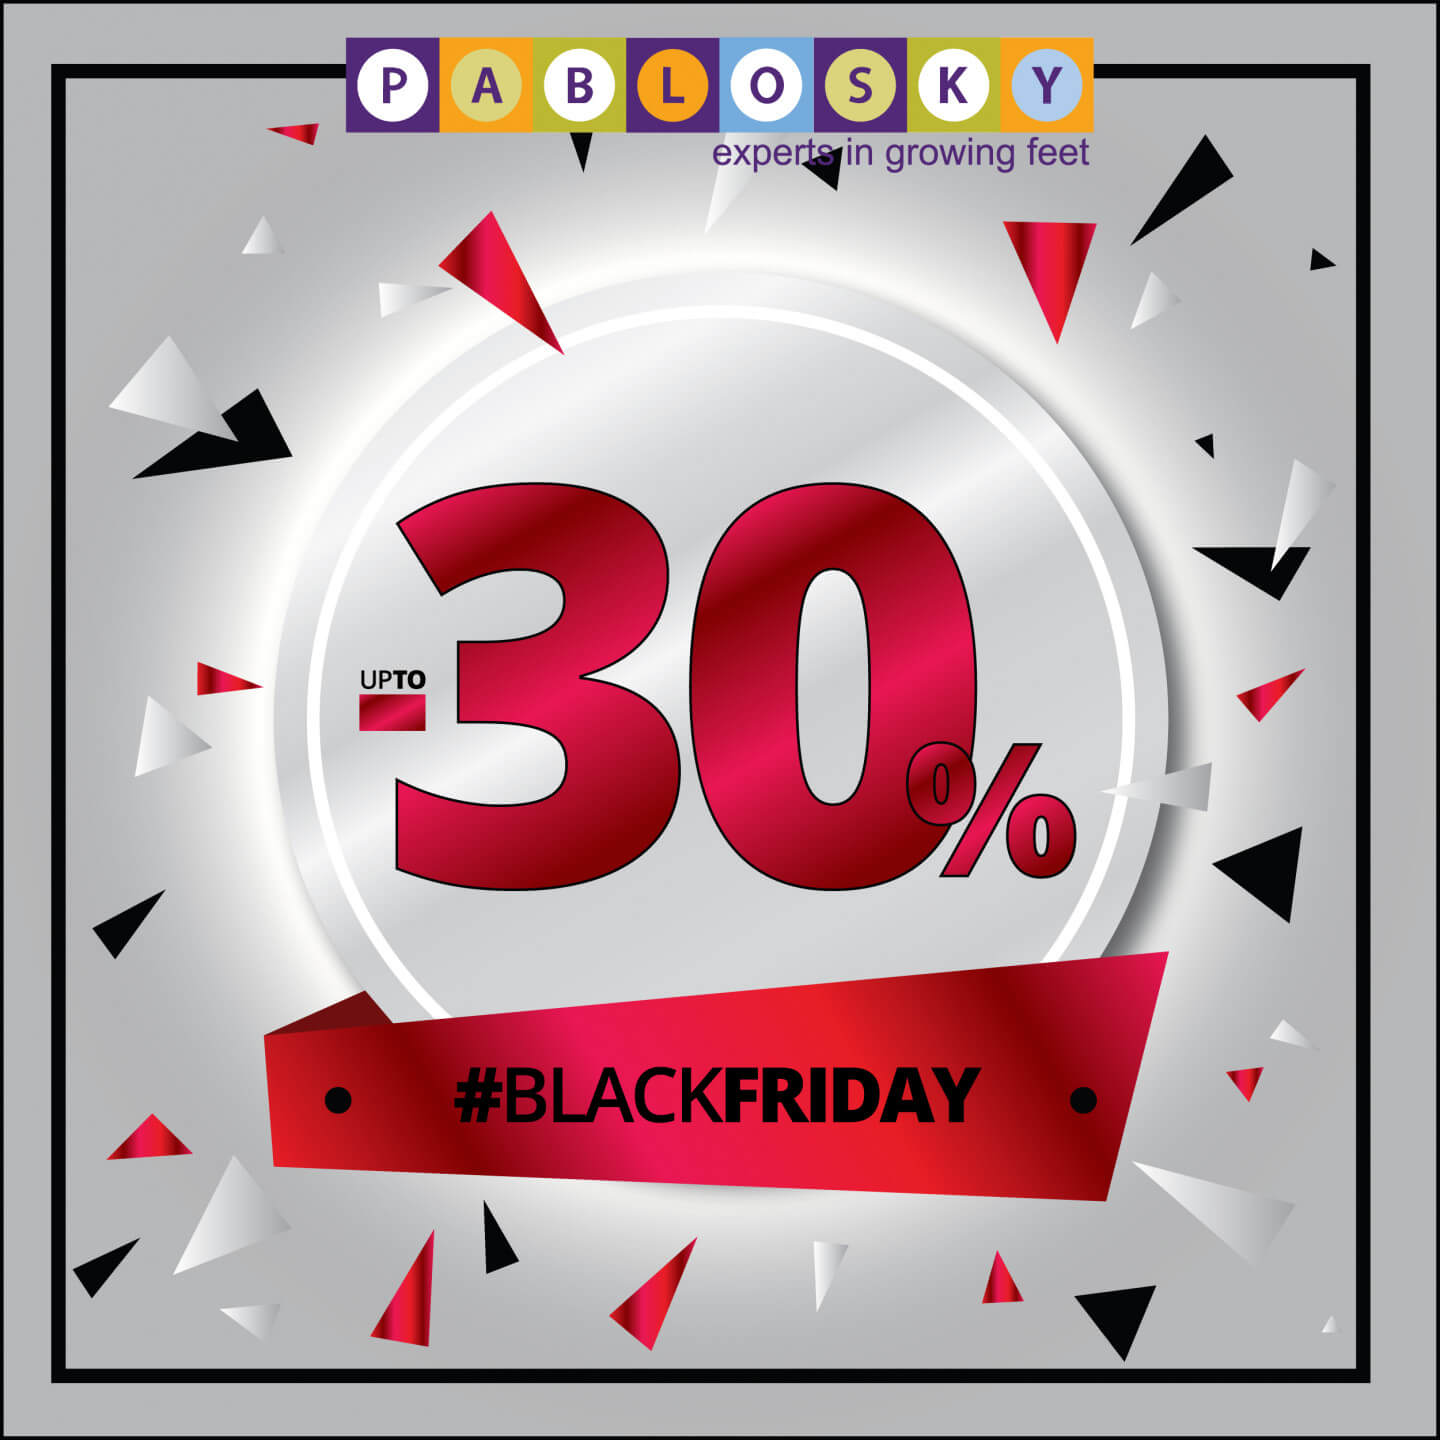 cfc7da7d999 ... #BLACKFRIDAY AT Pablosky Cyprus Don't miss our offers for Black Friday  ‼ Save up to 30% in all items!